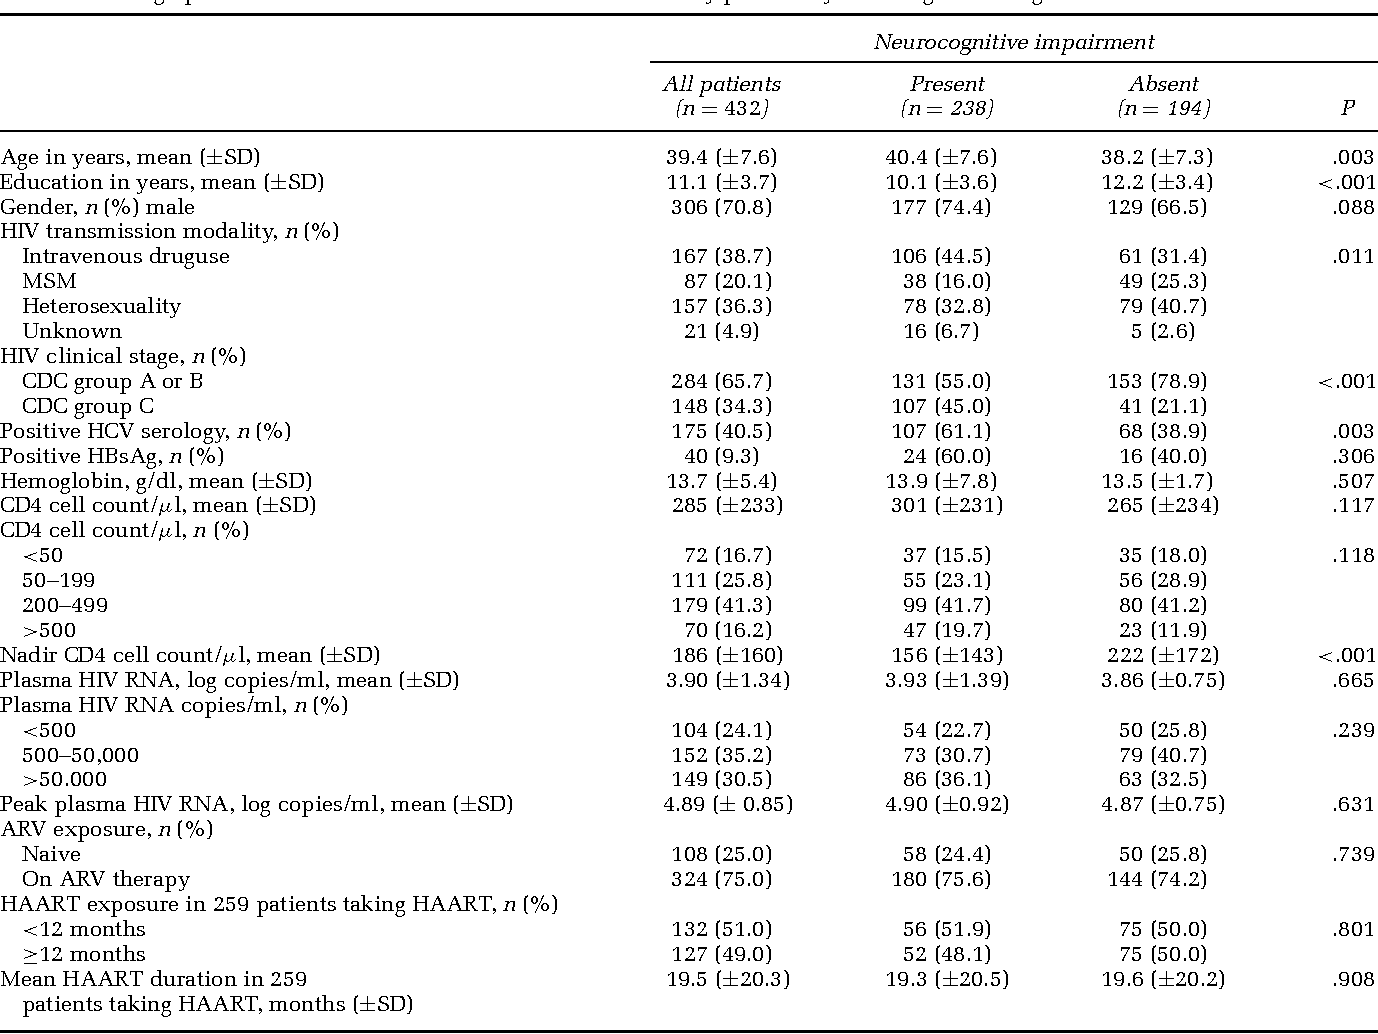 Table 1 Demographic and HIV illness characteristics in the 432 study patients by neurocognitive diagnosis